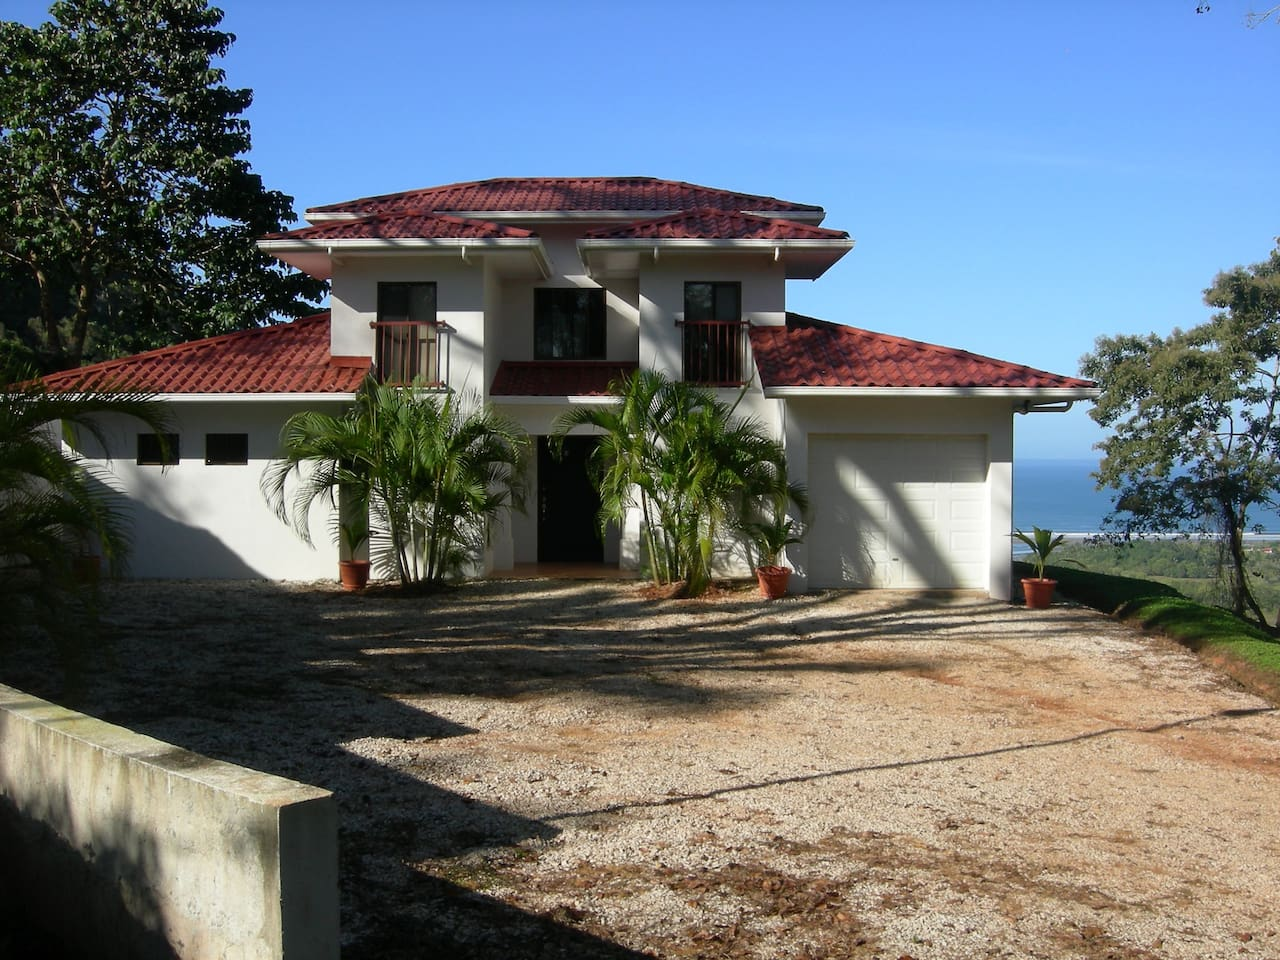 Front View of the House with the Ocean in the background